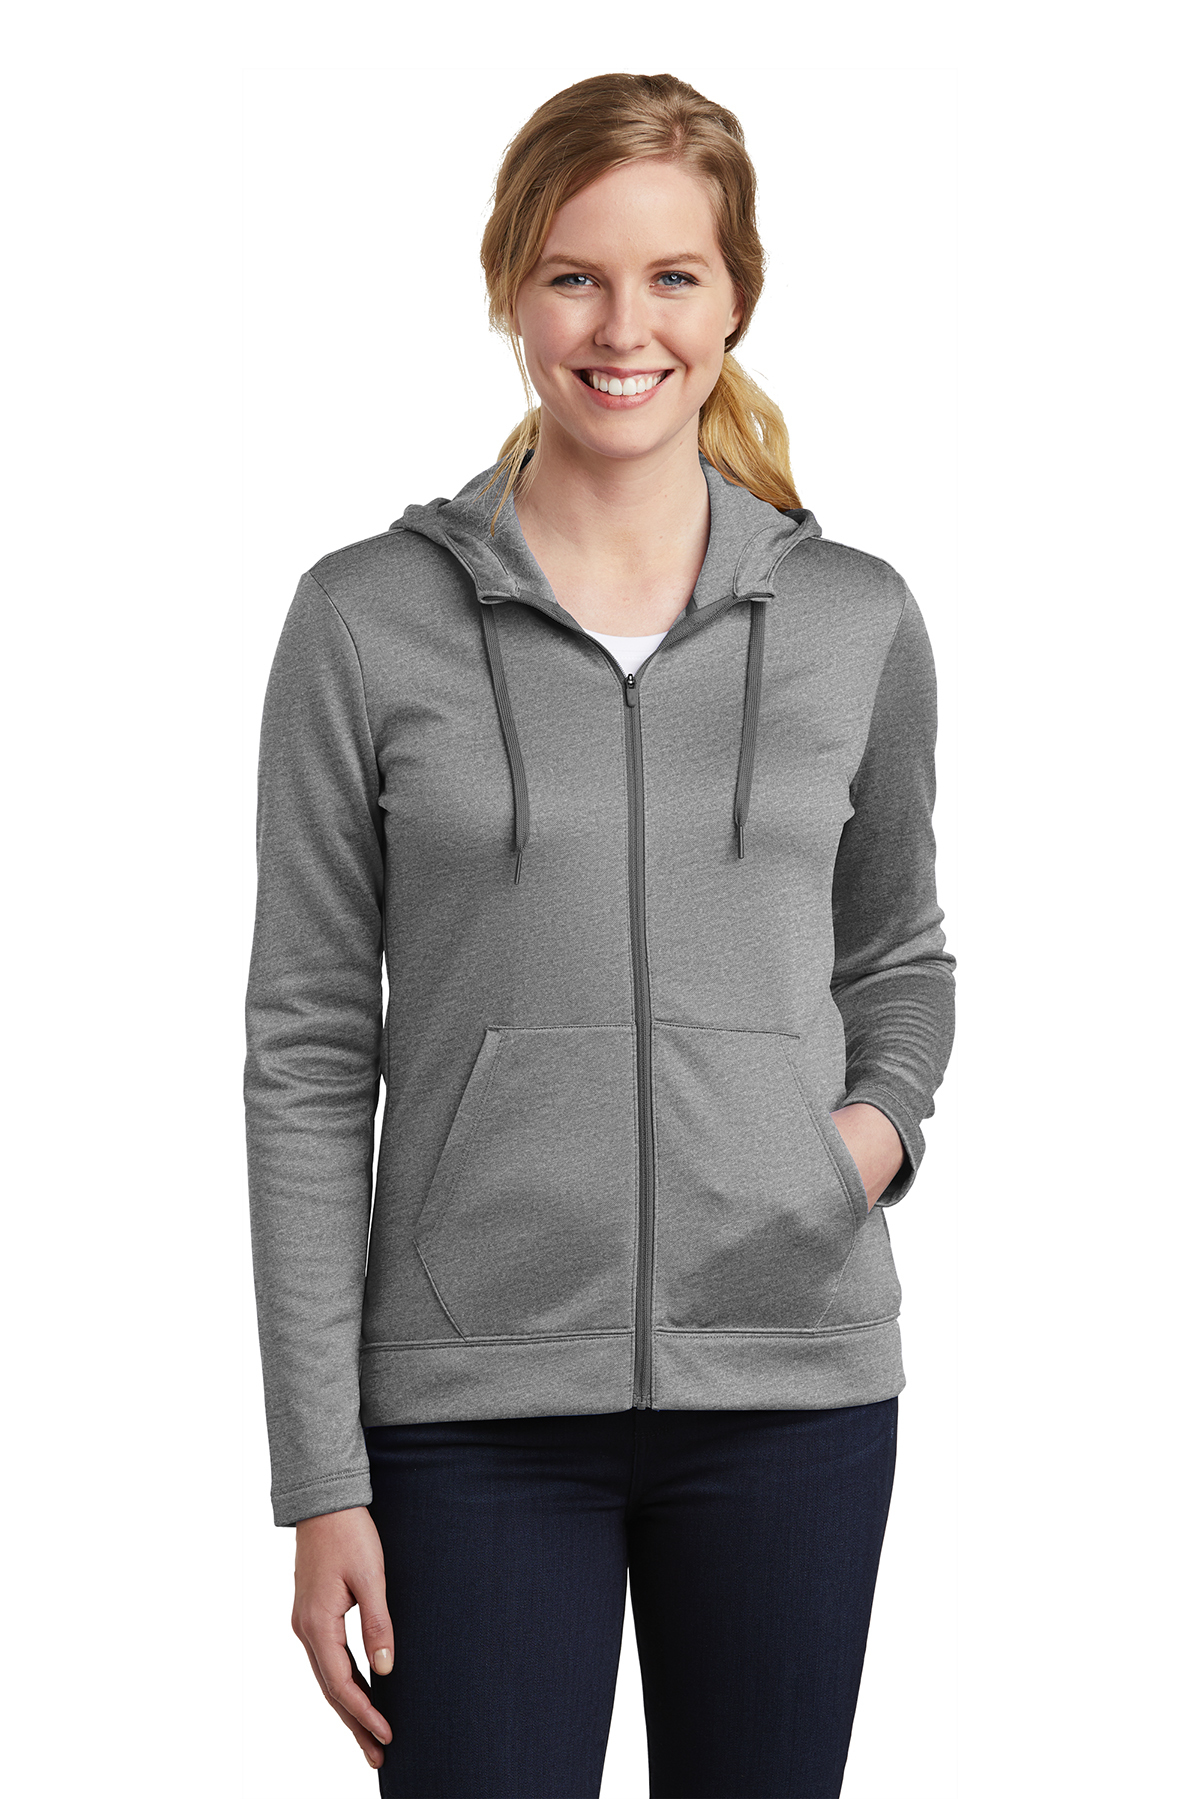 Nike Golf NKAH6264 - Ladies Therma-FIT Full Zip Fleece Hoodie